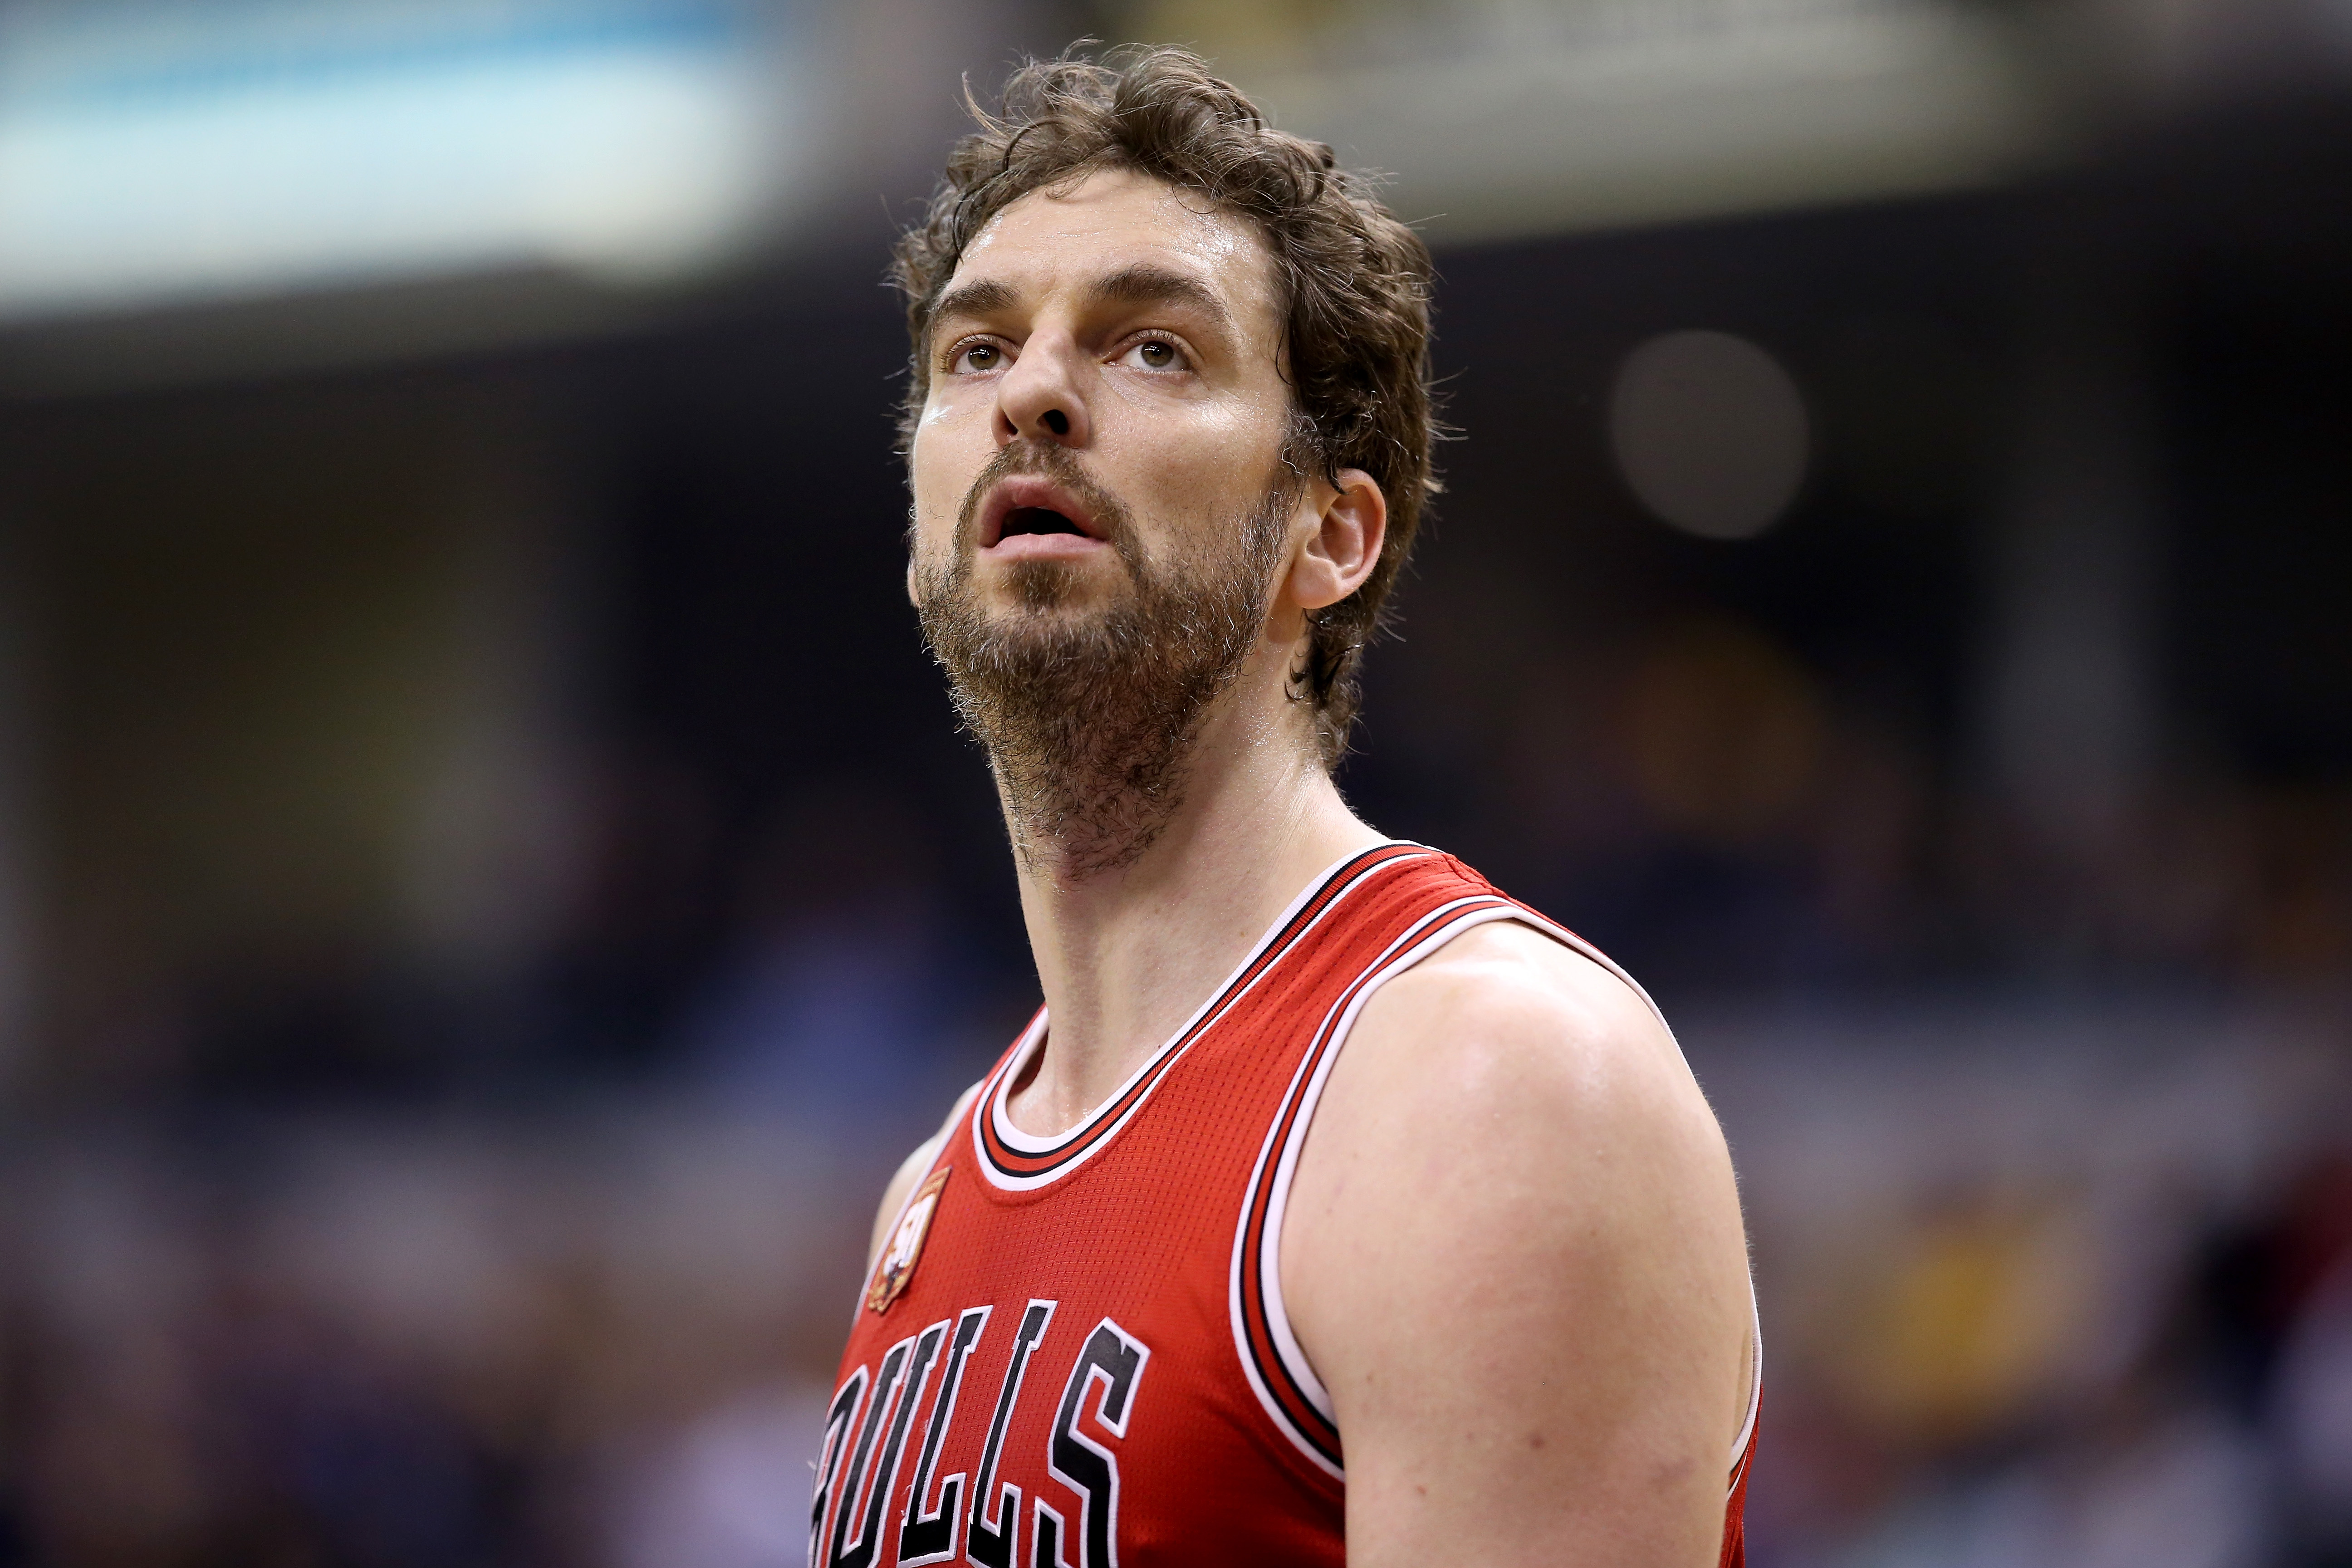 INDIANAPOLIS, INDIANA - MARCH 29: Pau Gasol #16 of the Chicago Bulls watches the action during the game against the Indiana Pacers at Bankers Life Fieldhouse on March 29, 2016 in Indianapolis, Indiana. NOTE TO USER: User expressly acknowledges and agrees that, by downloading and or using this photograph, User is consenting to the terms and conditions of the Getty Images License Agreement.   Andy Lyons/Getty Images/AFP